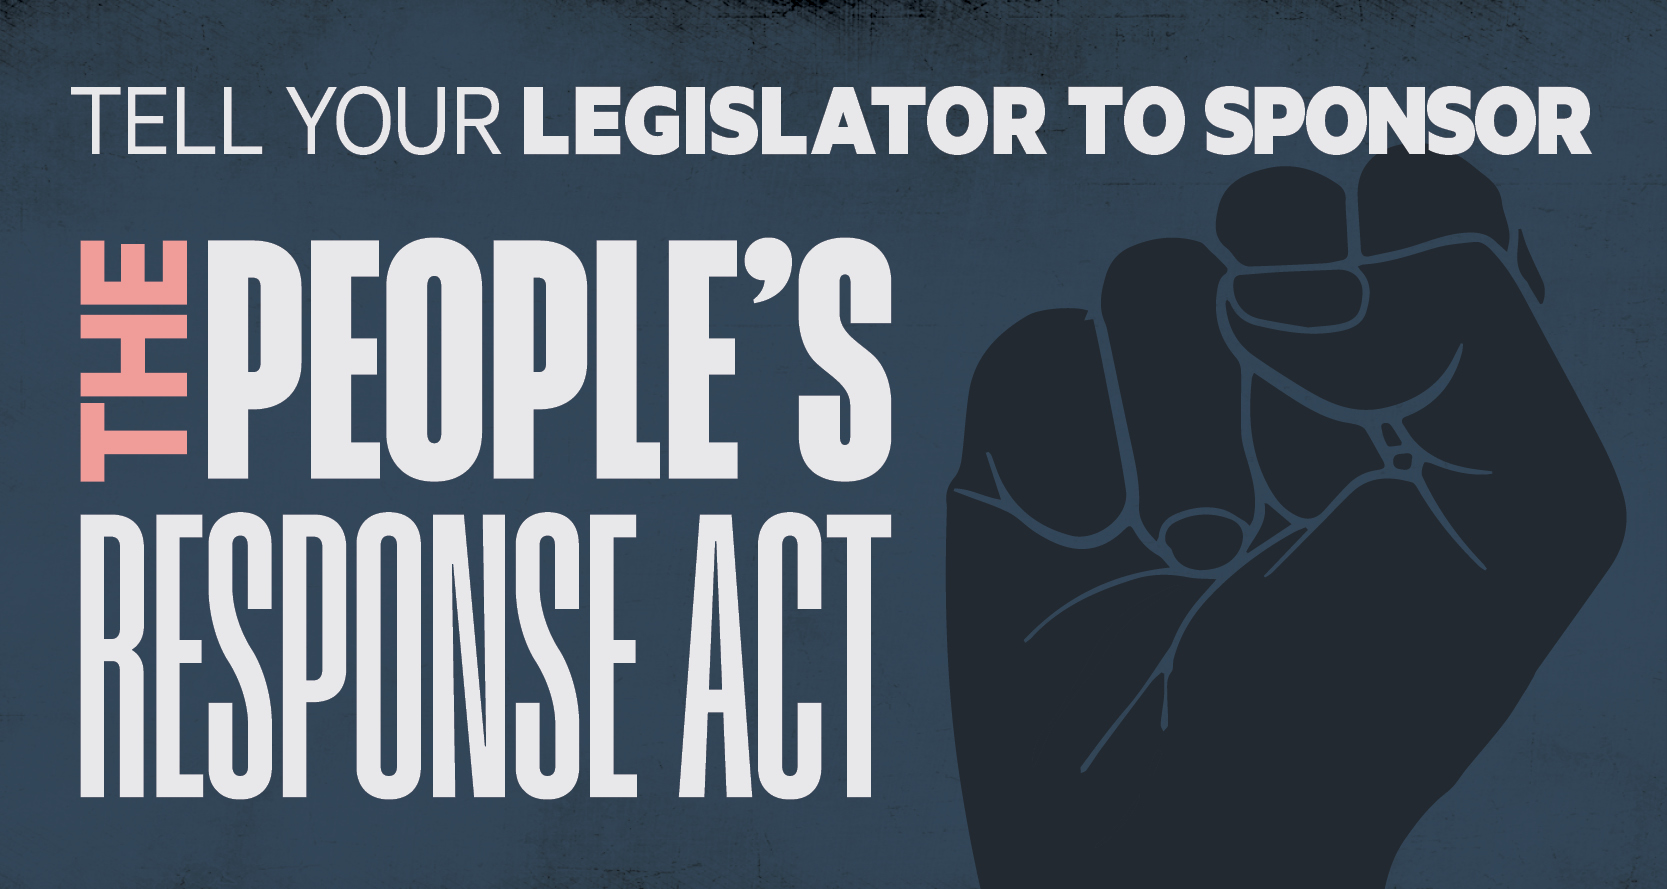 Public safety is a public health issue. Tell your Representative to cosponsor the People's Response Act!